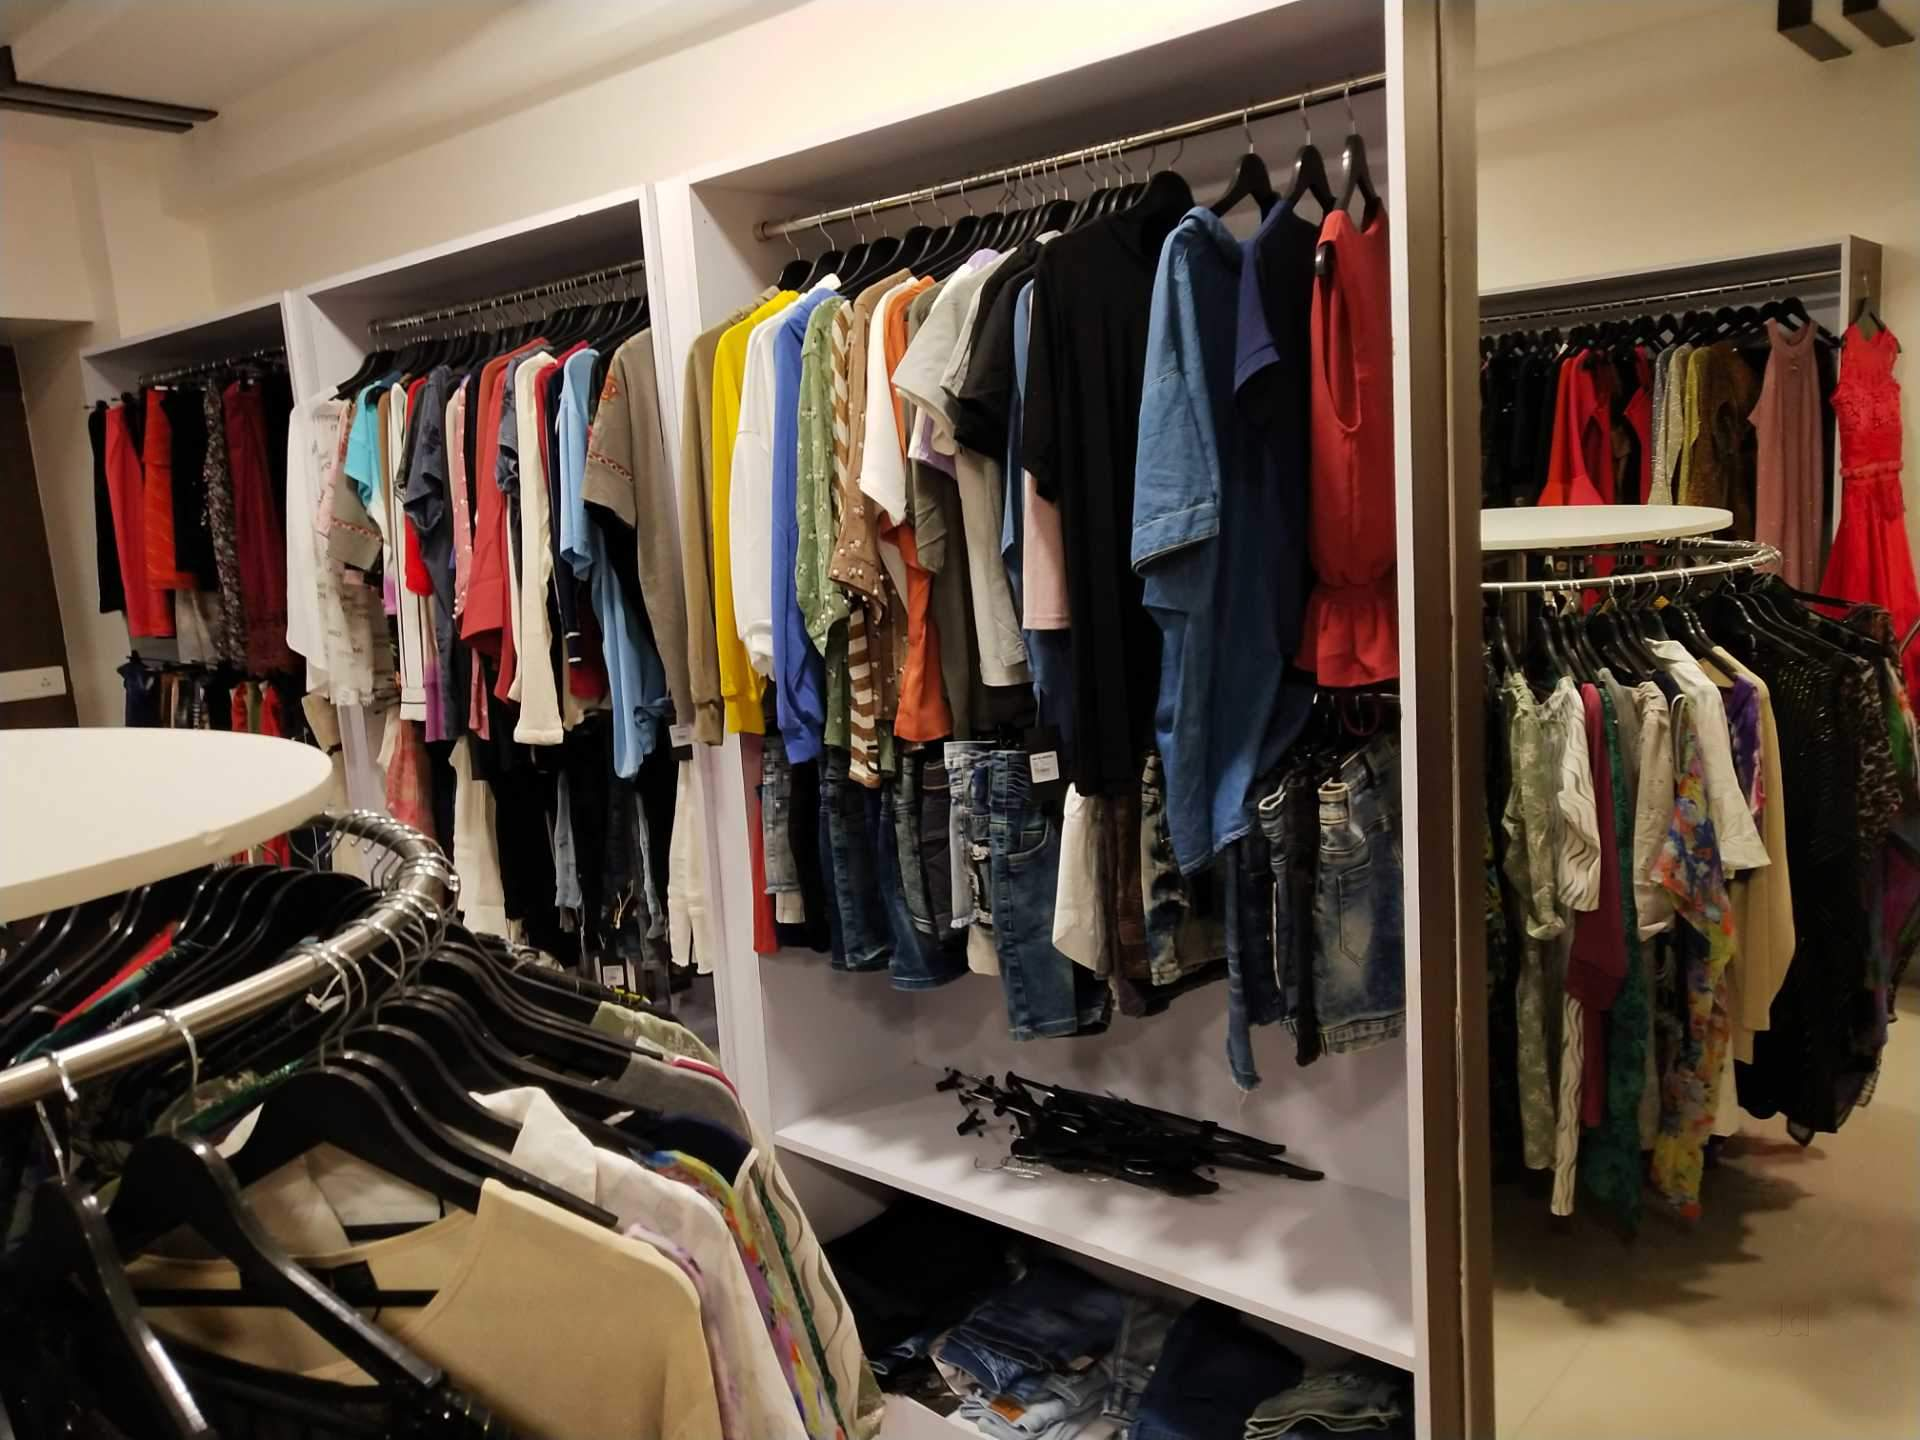 cc1c62d4208 Top 100 All Ladies Readymade Garment Retailers in Ahmedabad - Best ...